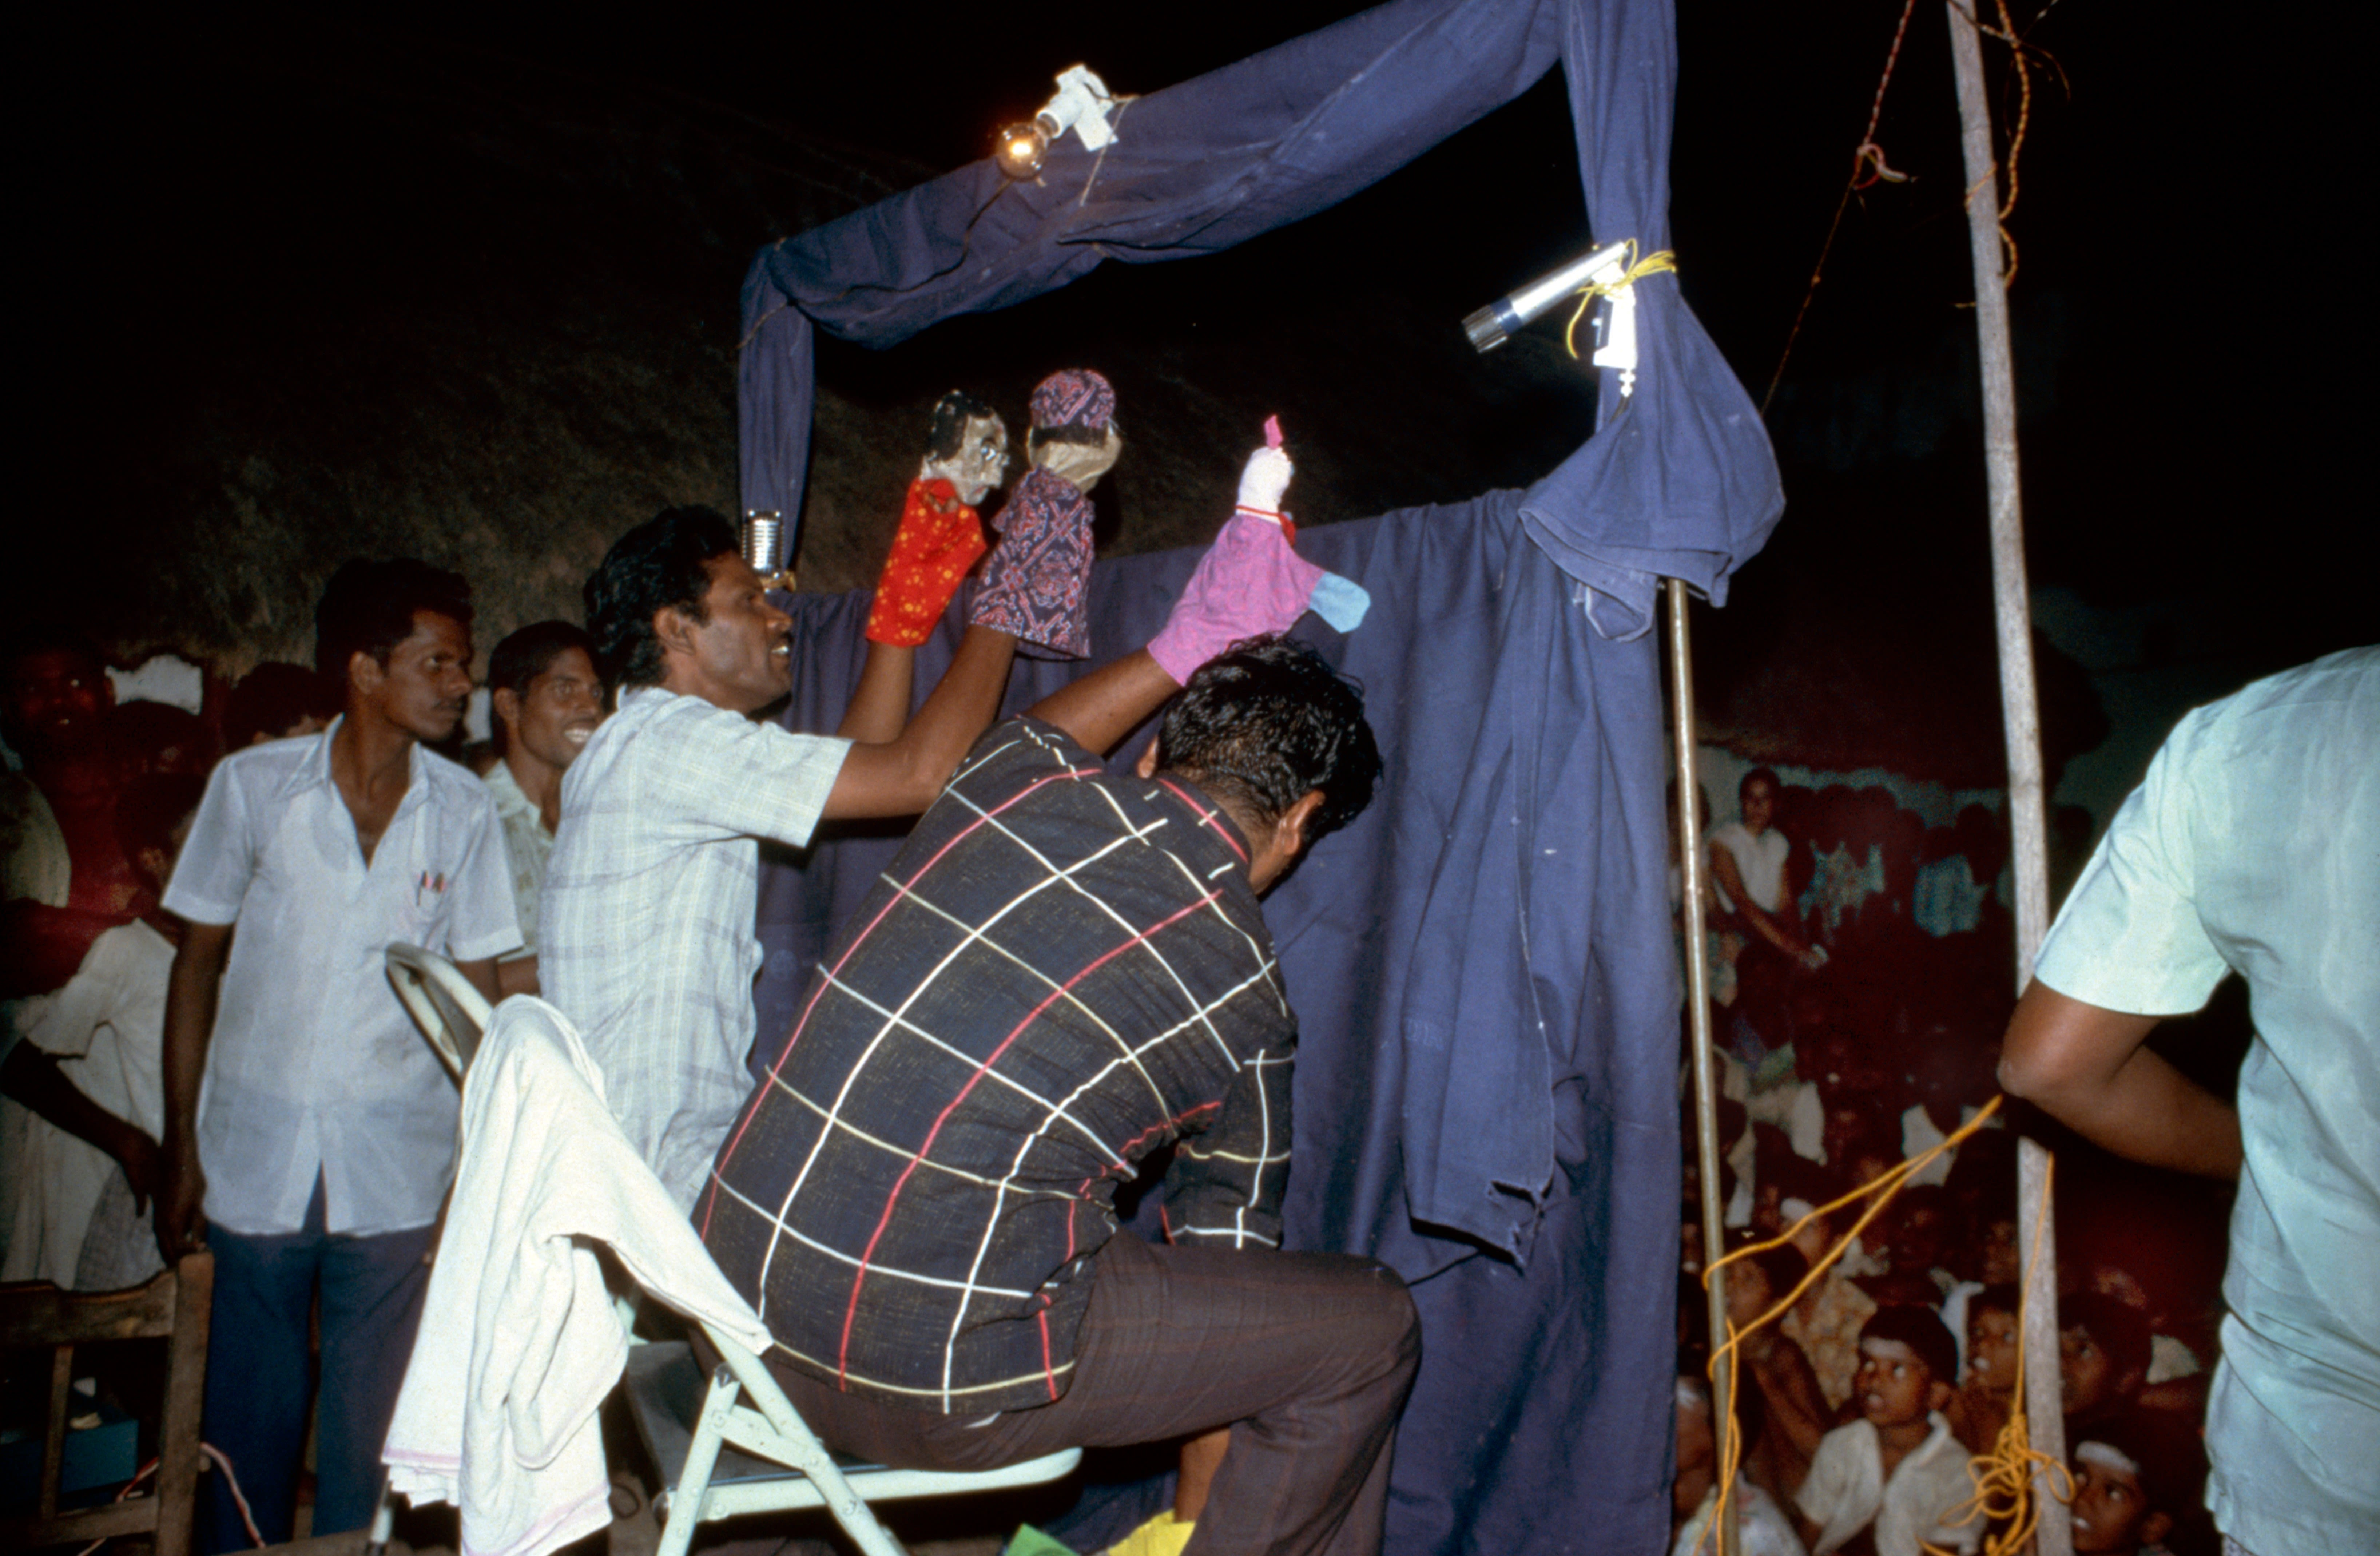 Image showing primary health care workers giving a puppet show to a group of people in a village in India